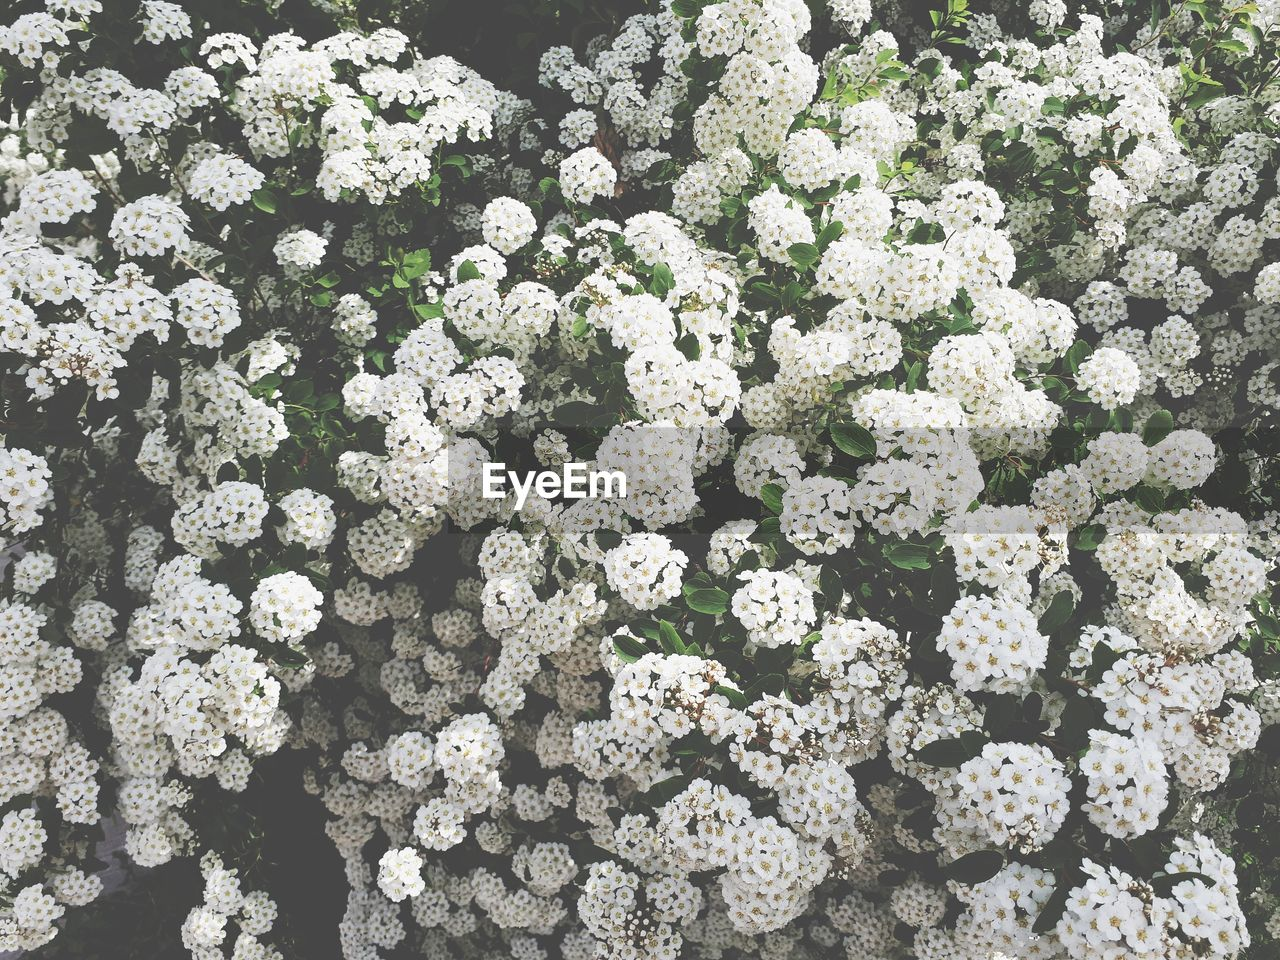 flower, flowering plant, vulnerability, beauty in nature, plant, fragility, nature, white color, no people, day, high angle view, freshness, full frame, flower head, growth, abundance, inflorescence, close-up, outdoors, backgrounds, bunch of flowers, flower arrangement